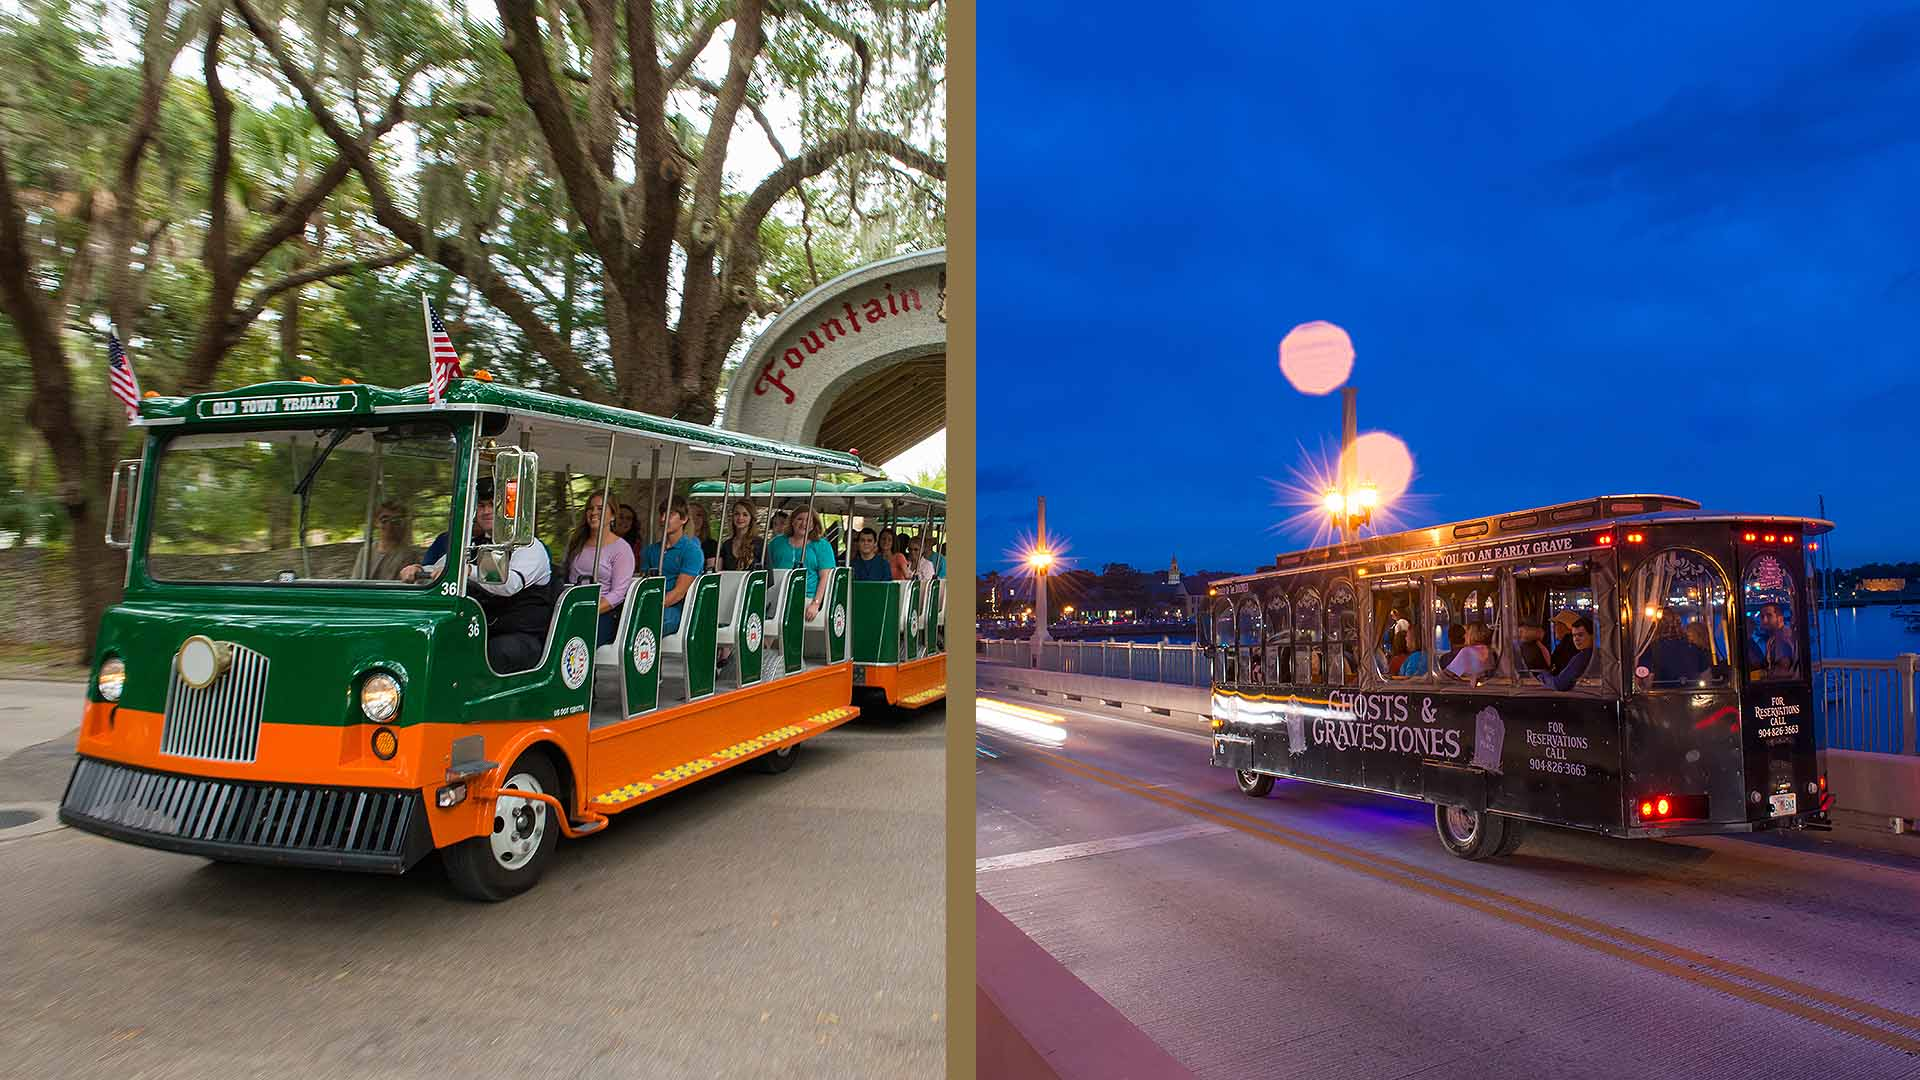 St. Augustine Old Town Trolley and night tour trolley